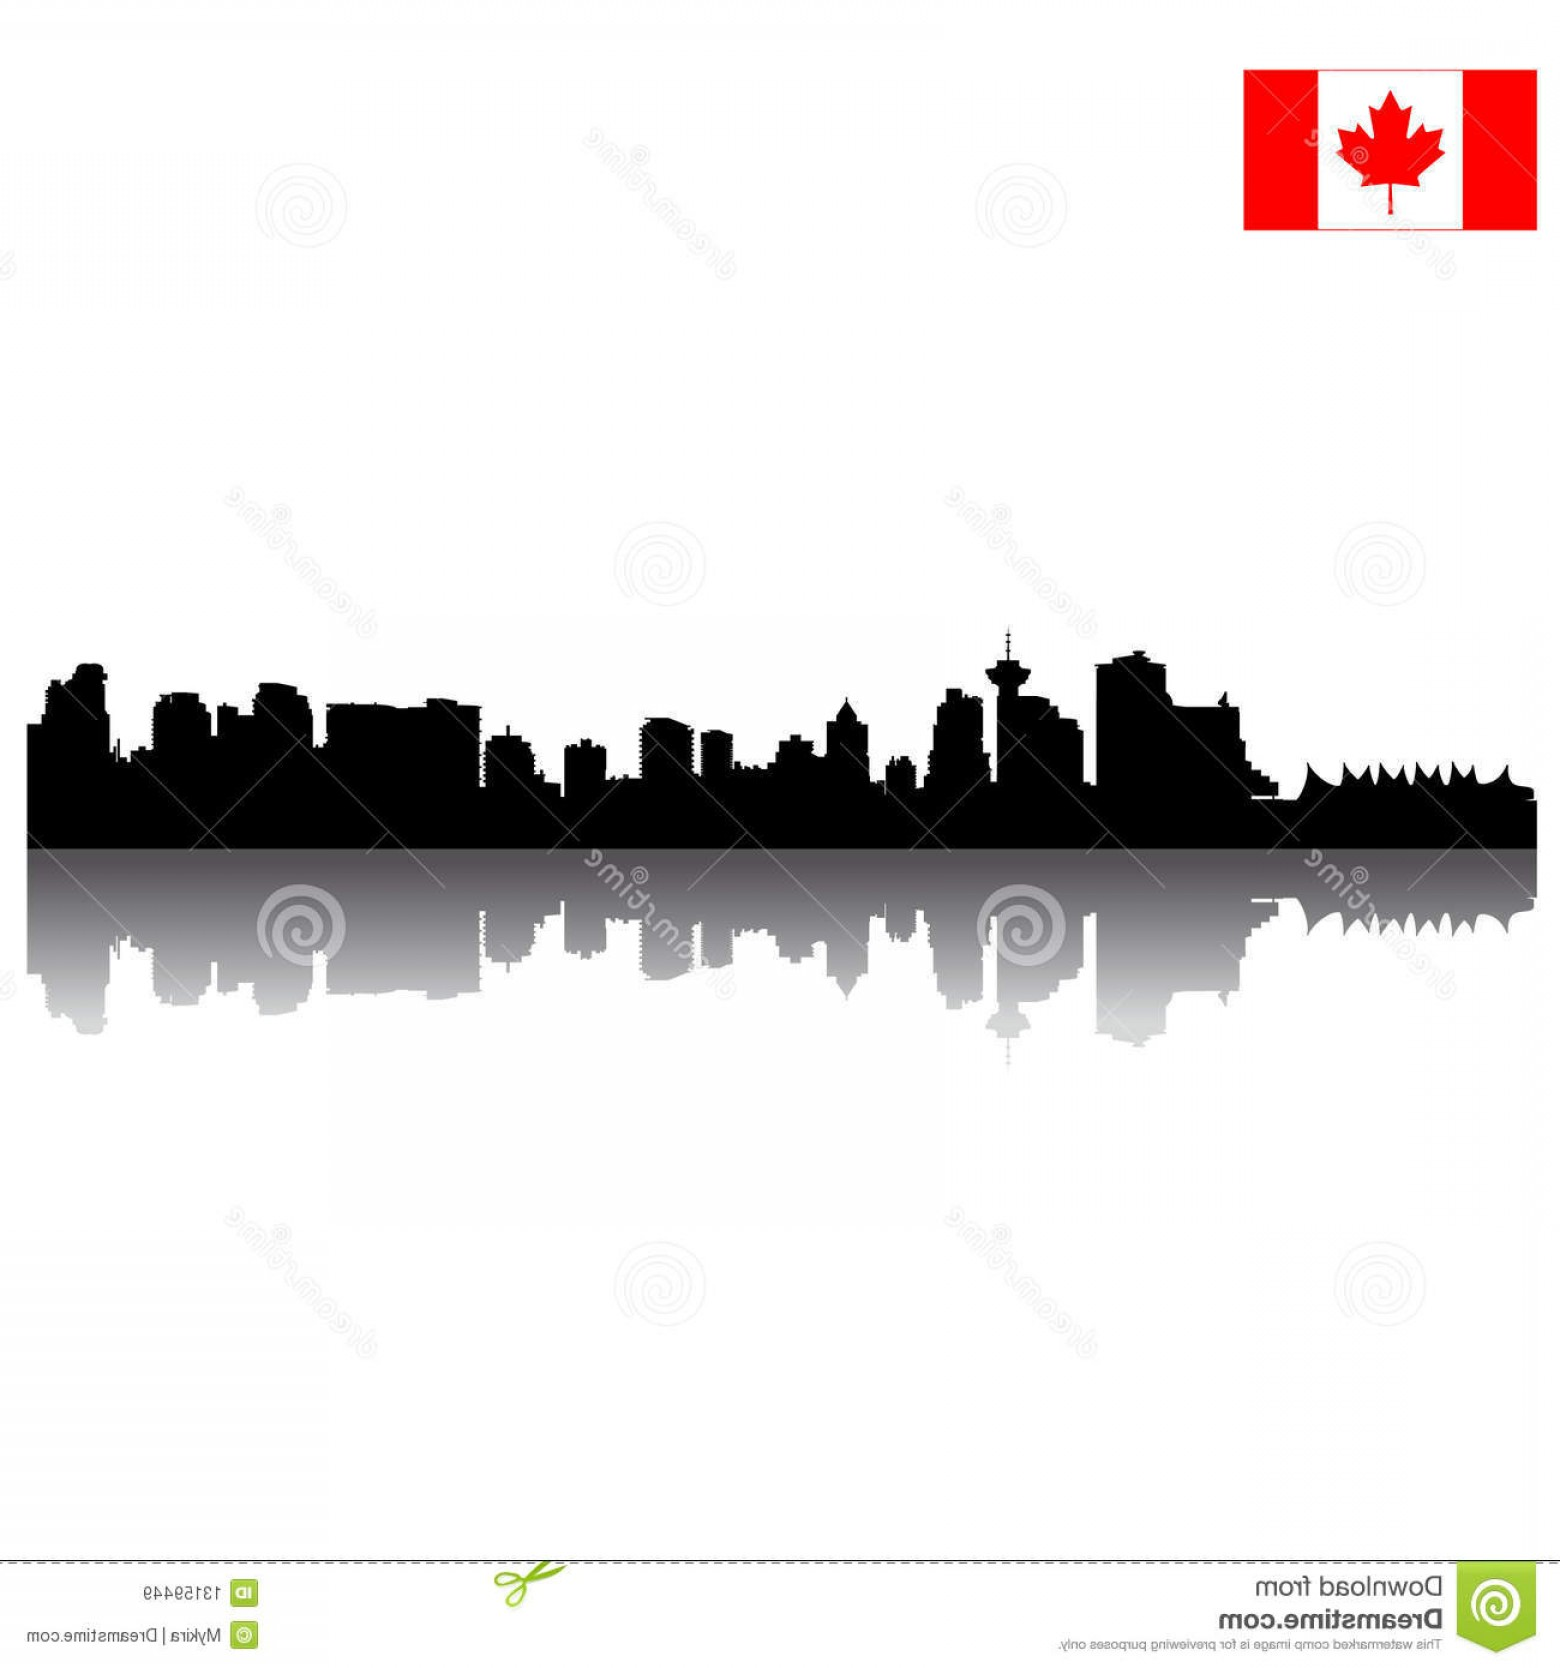 Vancouver Skyline Vector: Royalty Free Stock Images Vector Vancouver Silhouette Skyline Canadian Image